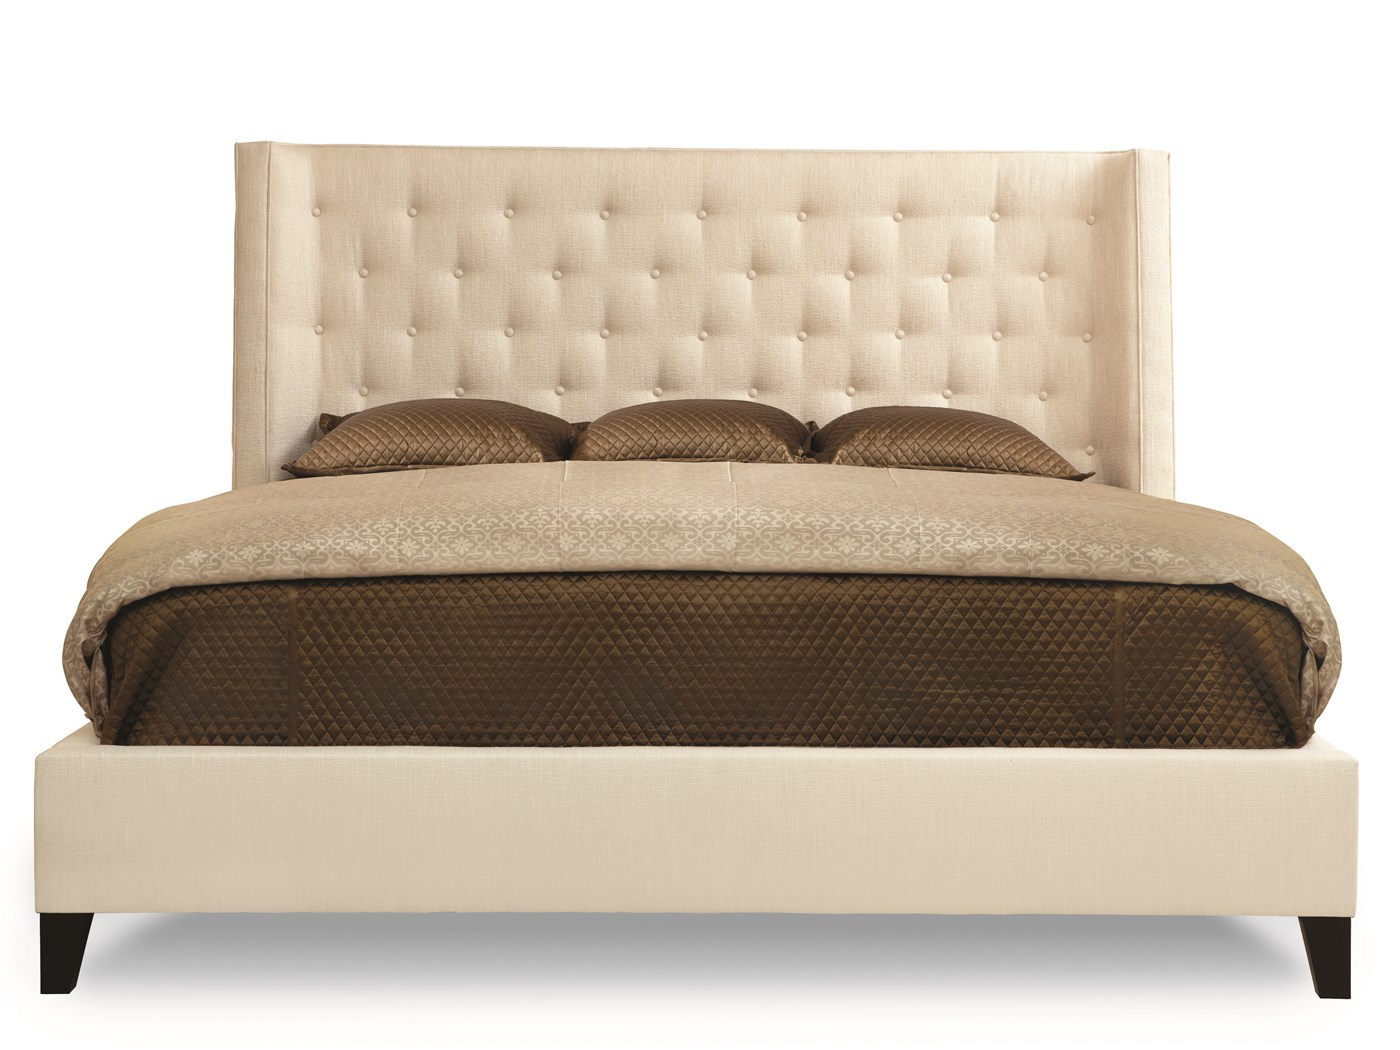 Maxime king platform wing bed beds bedroom robb stucky for Robb and stucky bedroom furniture